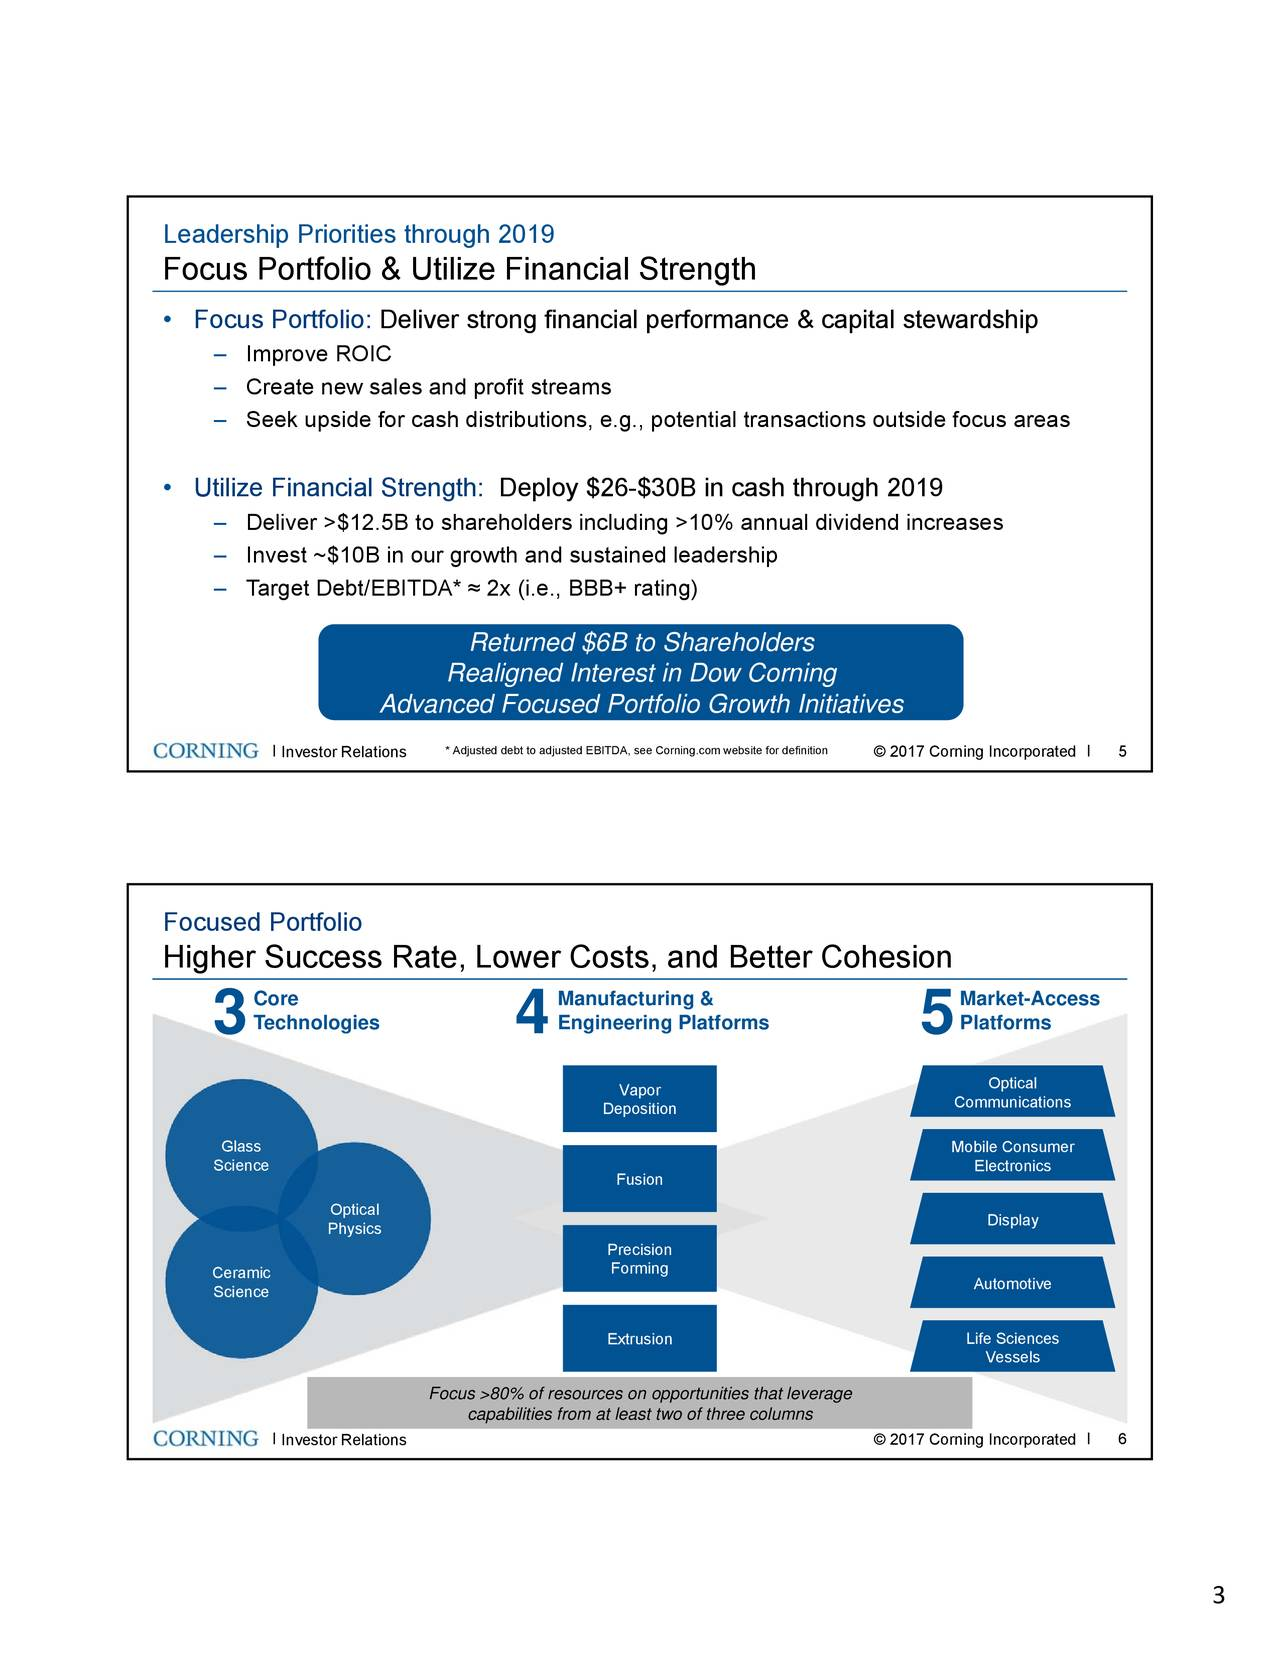 Focus Portfolio & Utilize Financial Strength • Focus Portfolio: Deliver strong financial performance & capital stewardship – Improve ROIC – Create new sales and profit streams – Seek upside for cash distributions, e.g., potential transactions outside focus areas • Utilize Financial Strength: Deploy $26-$30B in cash through 2019 – Deliver >$12.5B to shareholders including >10% annual dividend increases – Invest ~$10B in our growth and sustained leadership – Target Debt/EBITDA* ≈ 2x (i.e., BBB+ rating) Returned $6B to Shareholders Realigned Interest in Dow Corning Advanced Focused Portfolio Growth Initiatives . Investor Relations Adjusted debt to adjusted EBITDA, see Corni© 2017 Corning Incorporatedo. Focused Portfolio Higher Success Rate, Lower Costs, and Better Cohesion Core Manufacturing & Market-Access 3 Technologies 4 Engineering Platforms 5 Platforms Vapor Optical Deposition Communications Glass Mobile Consumer Science Electronics Fusion Optical Physics Display Precision Forming Ceramic Automotive Science Extrusion Life Sciences Vessels Focus >80% of resources on opportunities that leverage capabilities from at least two of three columns . Investor Relations © 2017 Corning Incorporated . . 3